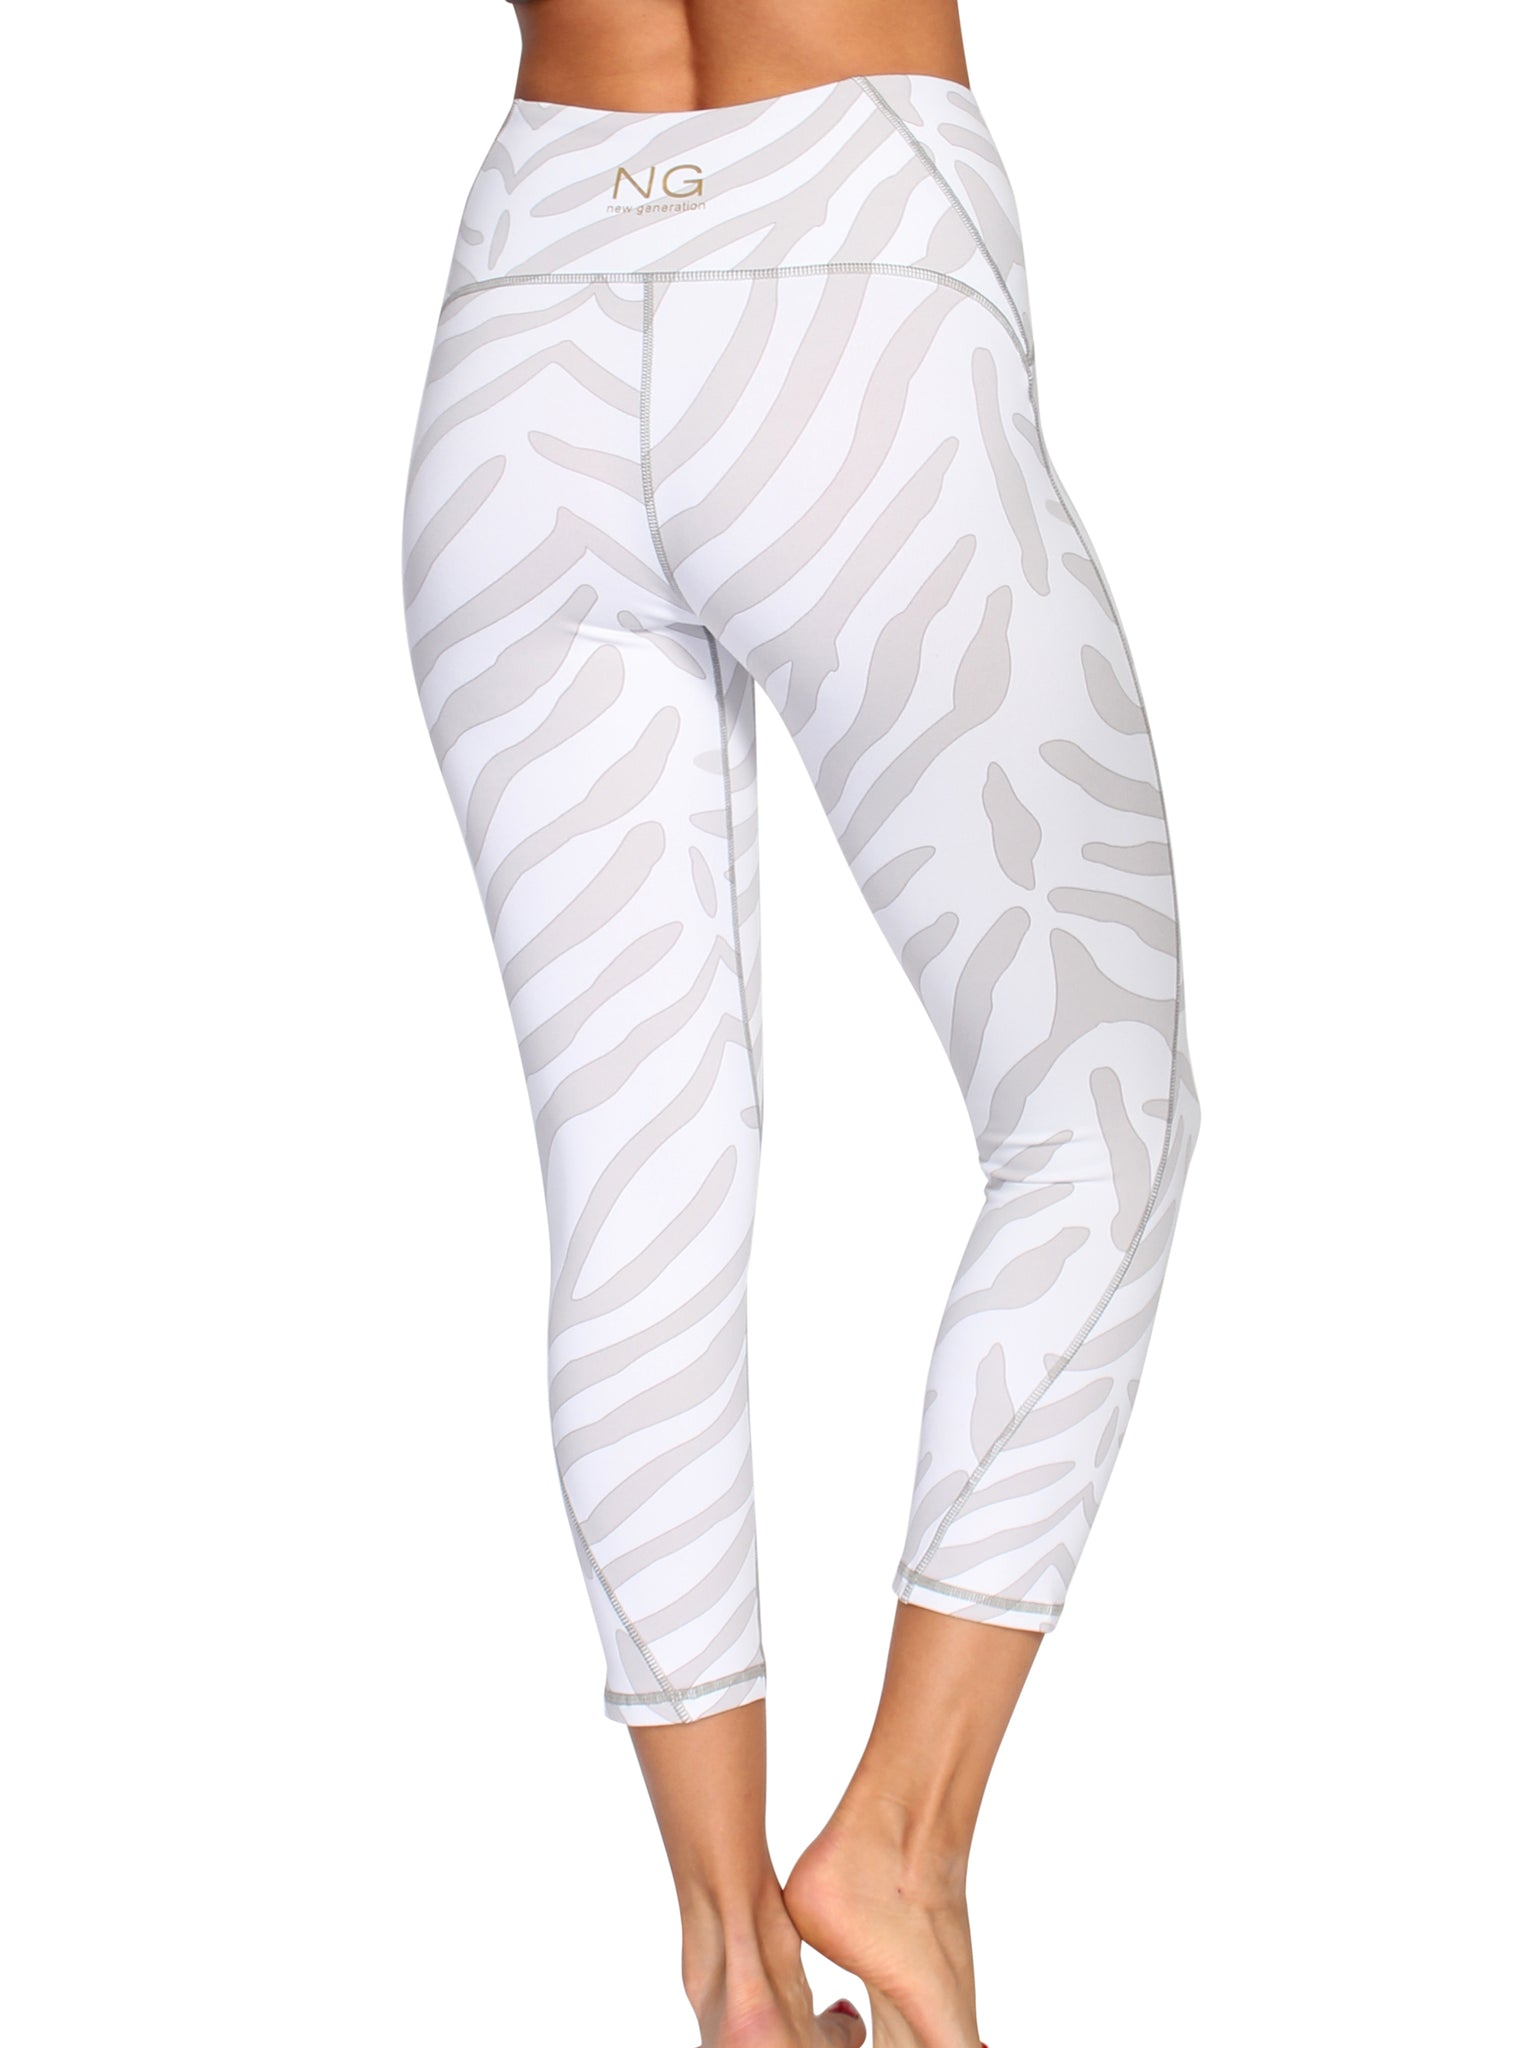 ULTIMATE SUPPORT 7/8 ZEBRA TIGHTS - OFF WHITE/BEIGE